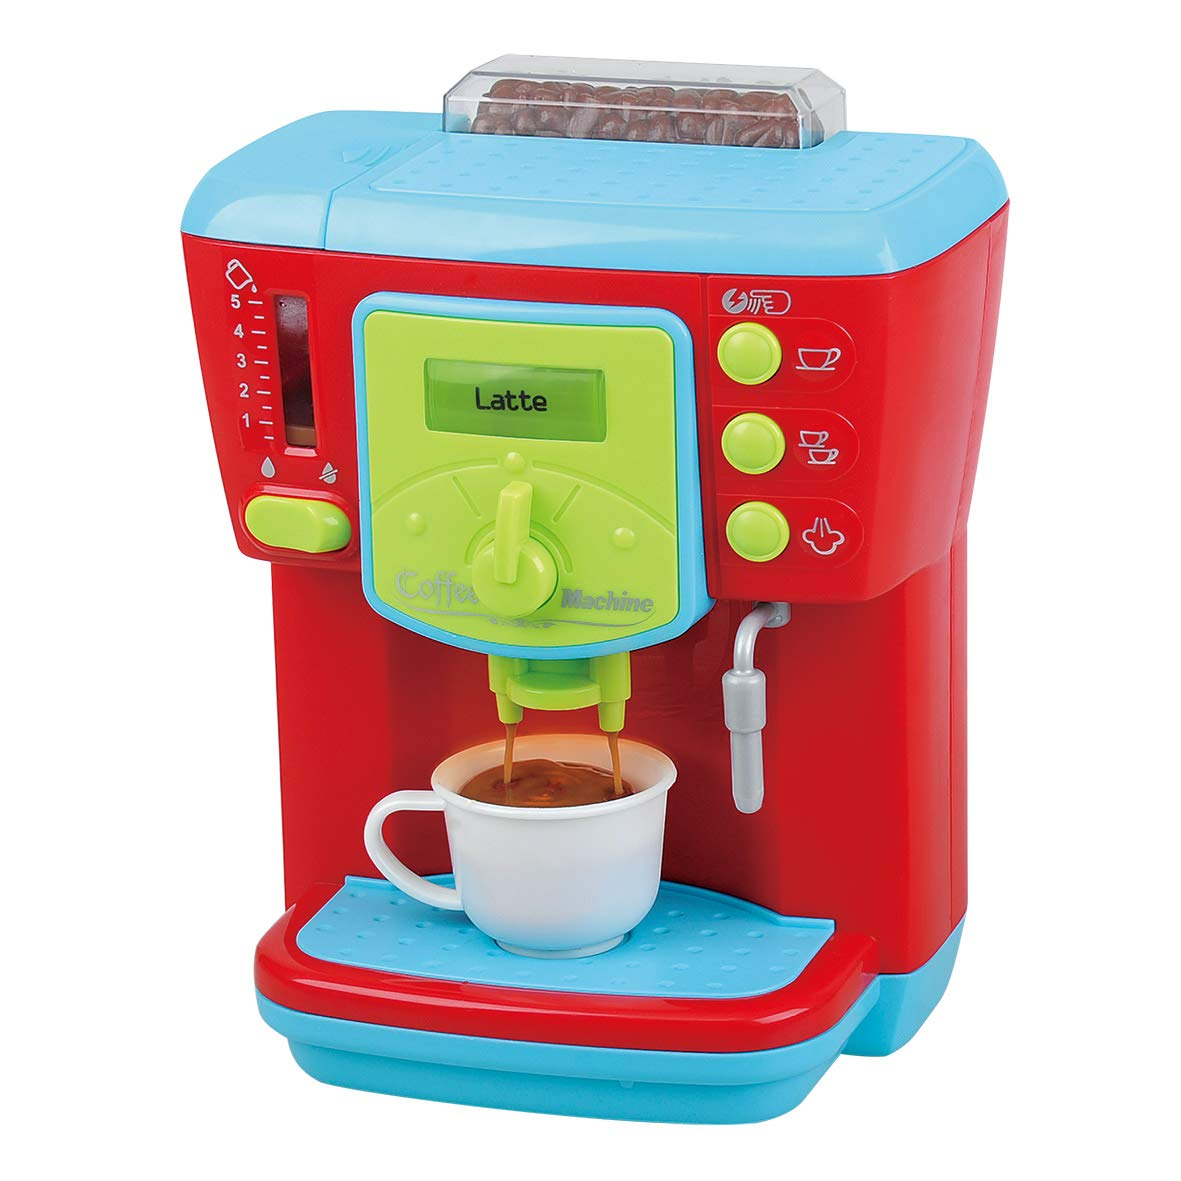 PlayGo Delicious Coffee Maker Machine Kids Children Pretend Play Activity Maker Toy - Kitchen Gifts Toys Set by PlayGo